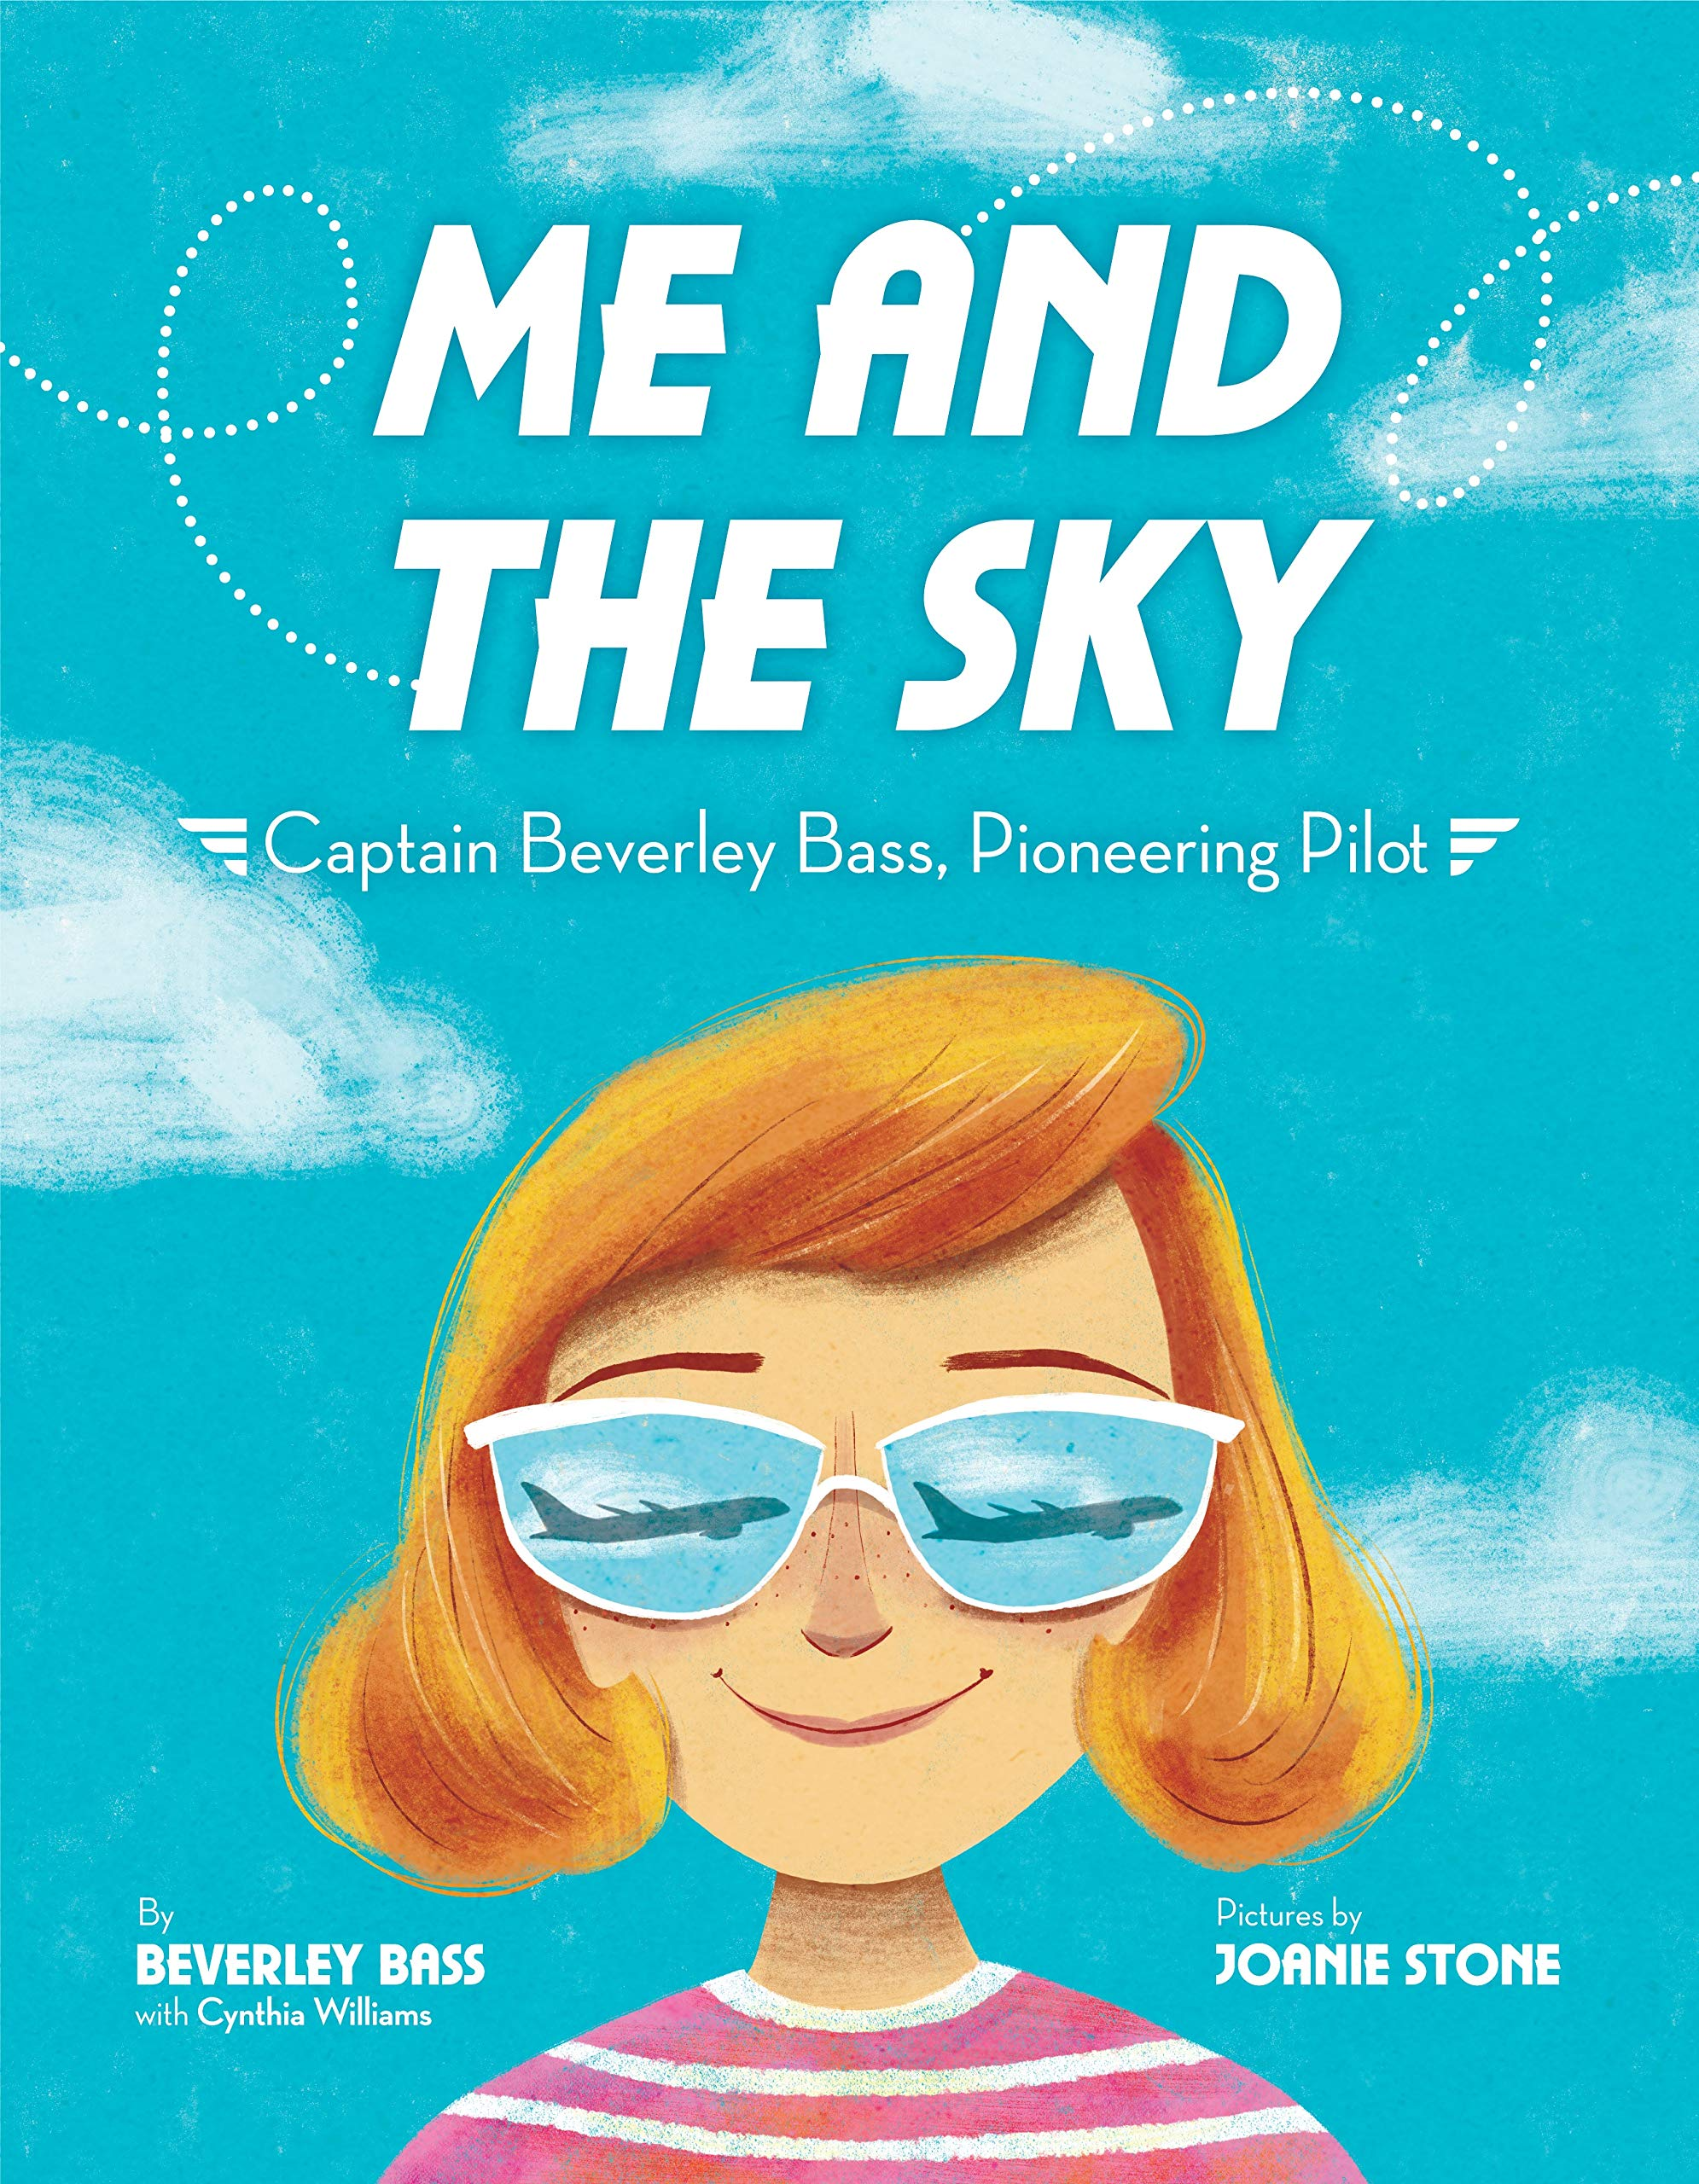 Image result for me and the sky beverly bass amazon